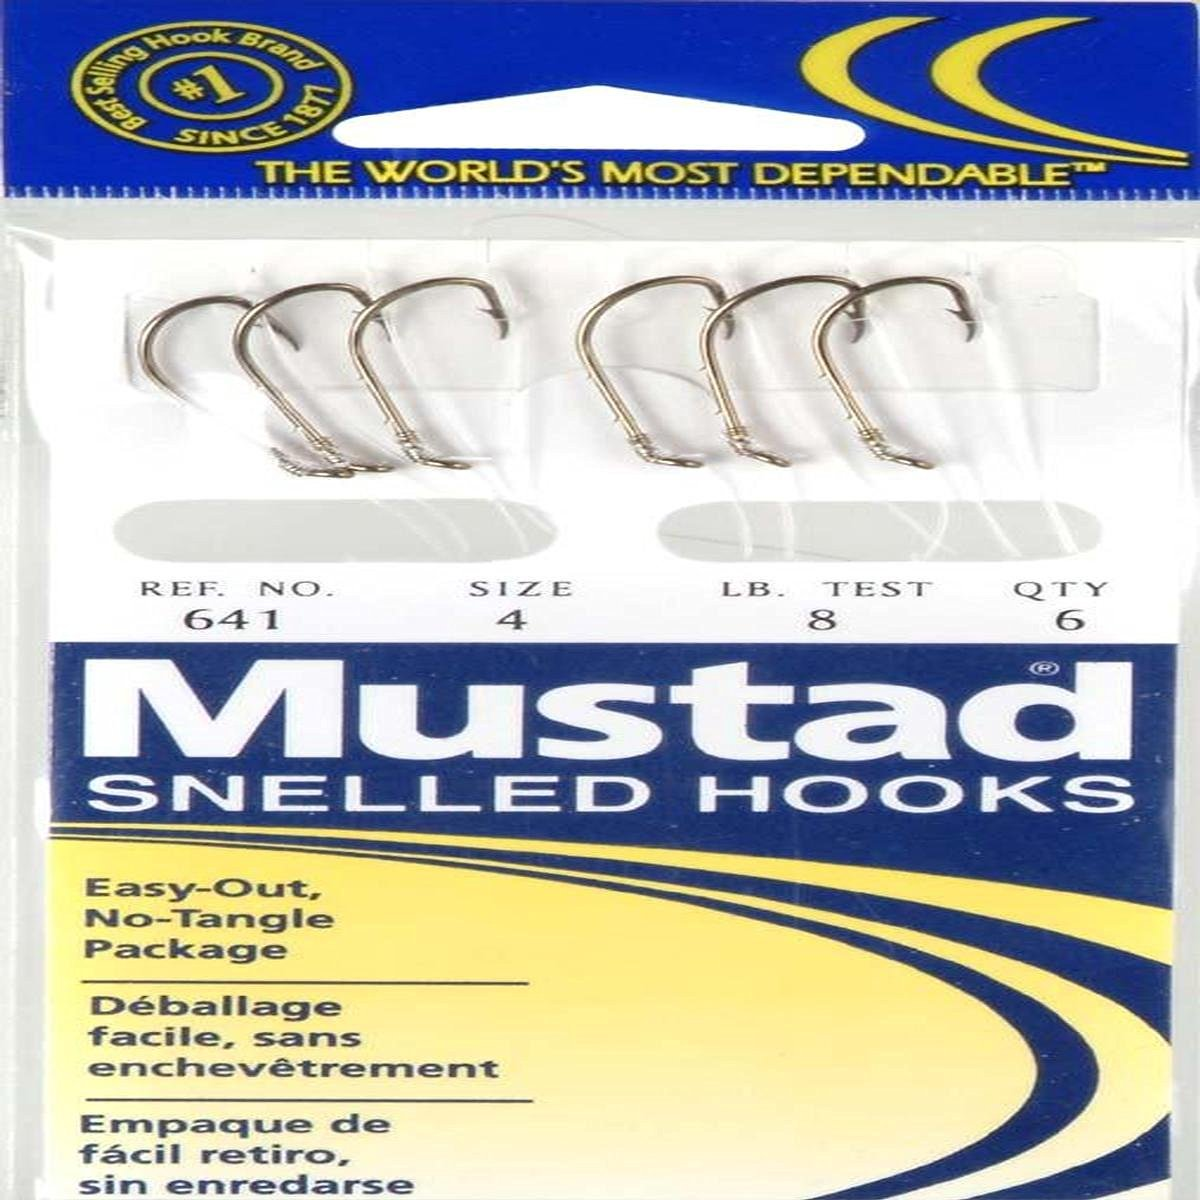 Maurice Sporting Goods 641-4-41 Snelled Hook, Size 4, 6-Pk.